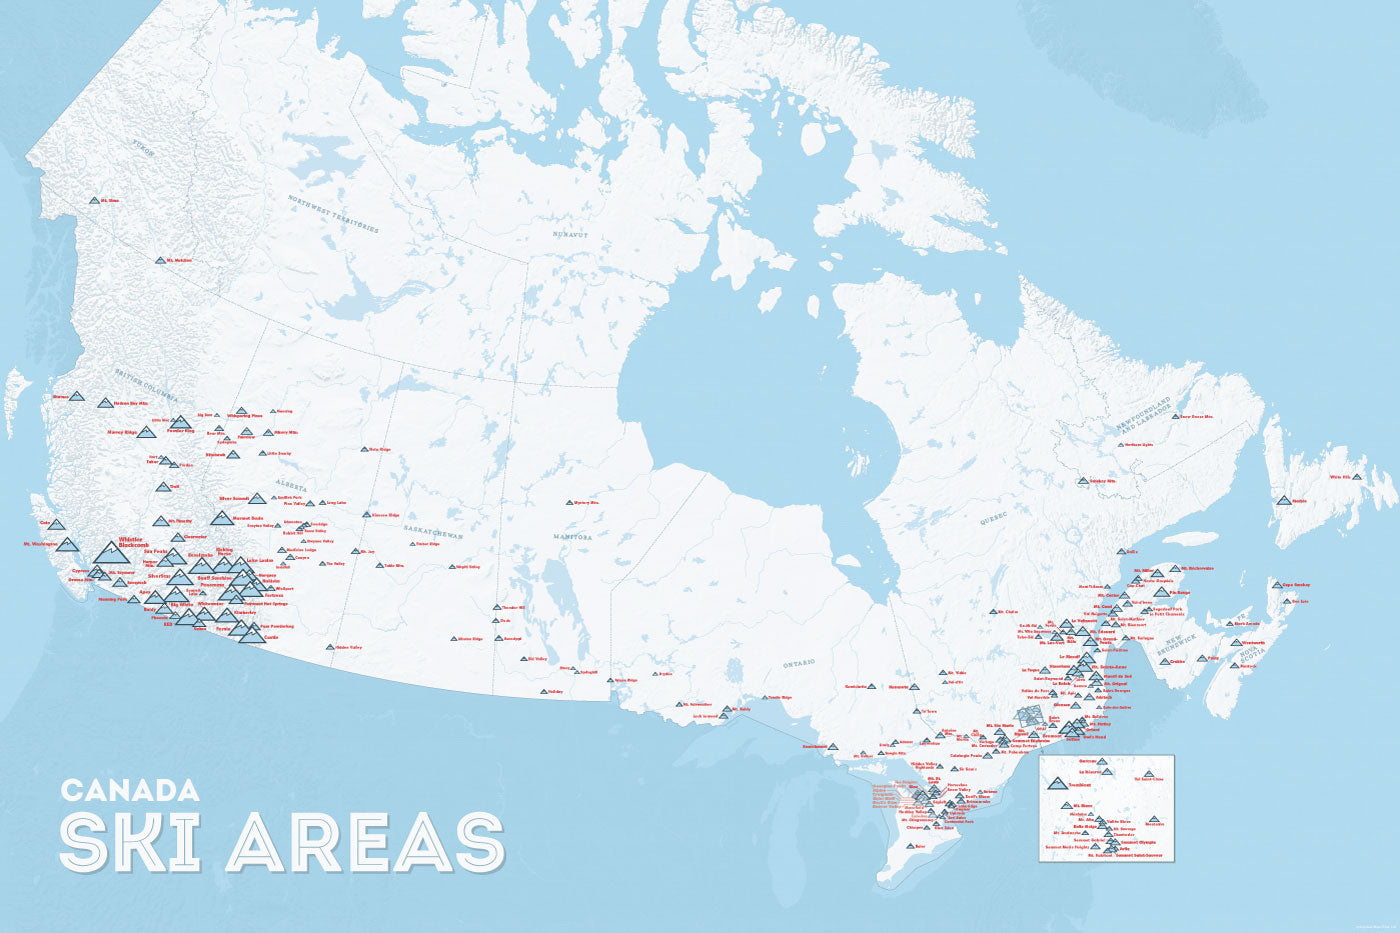 Canada Ski Resorts Map Canada Ski Resorts Map 24x36 Poster   Best Maps Ever